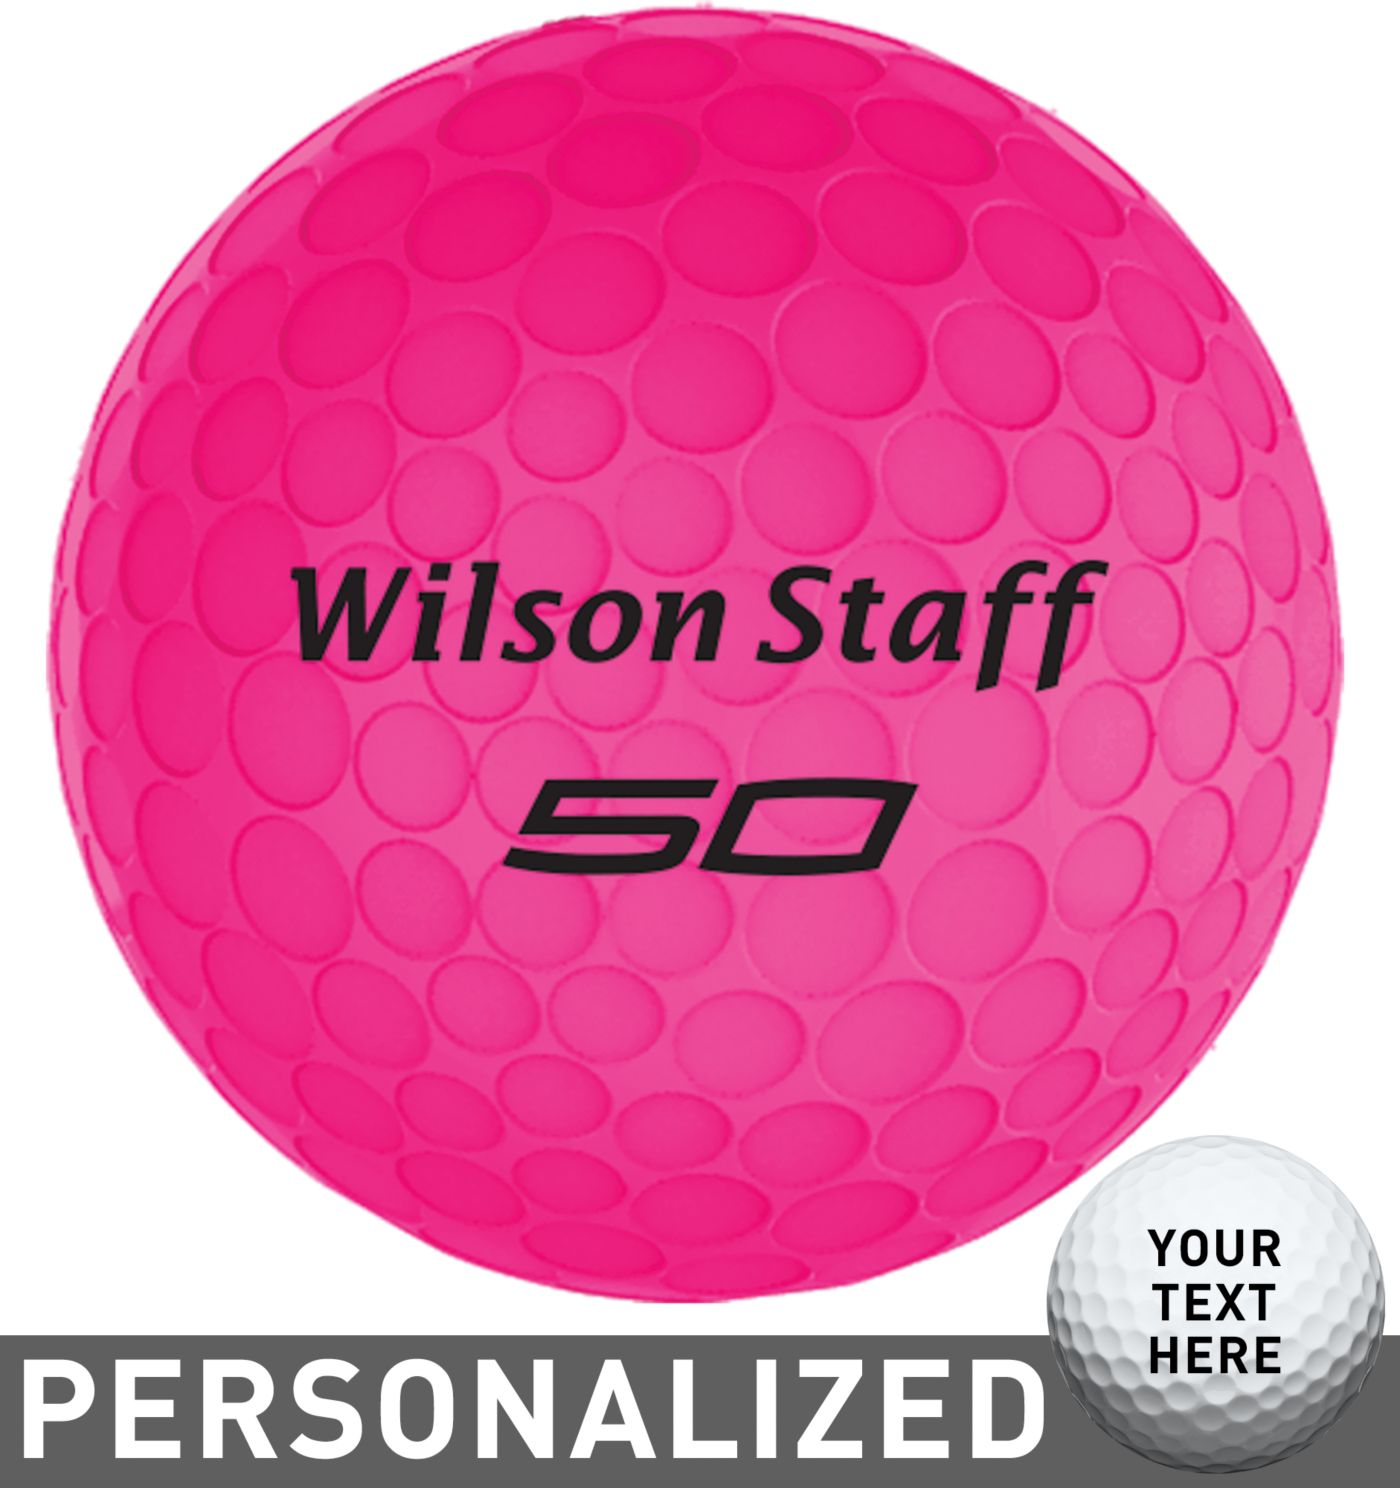 Wilson Staff Fifty Elite Pink Personalized Golf Balls